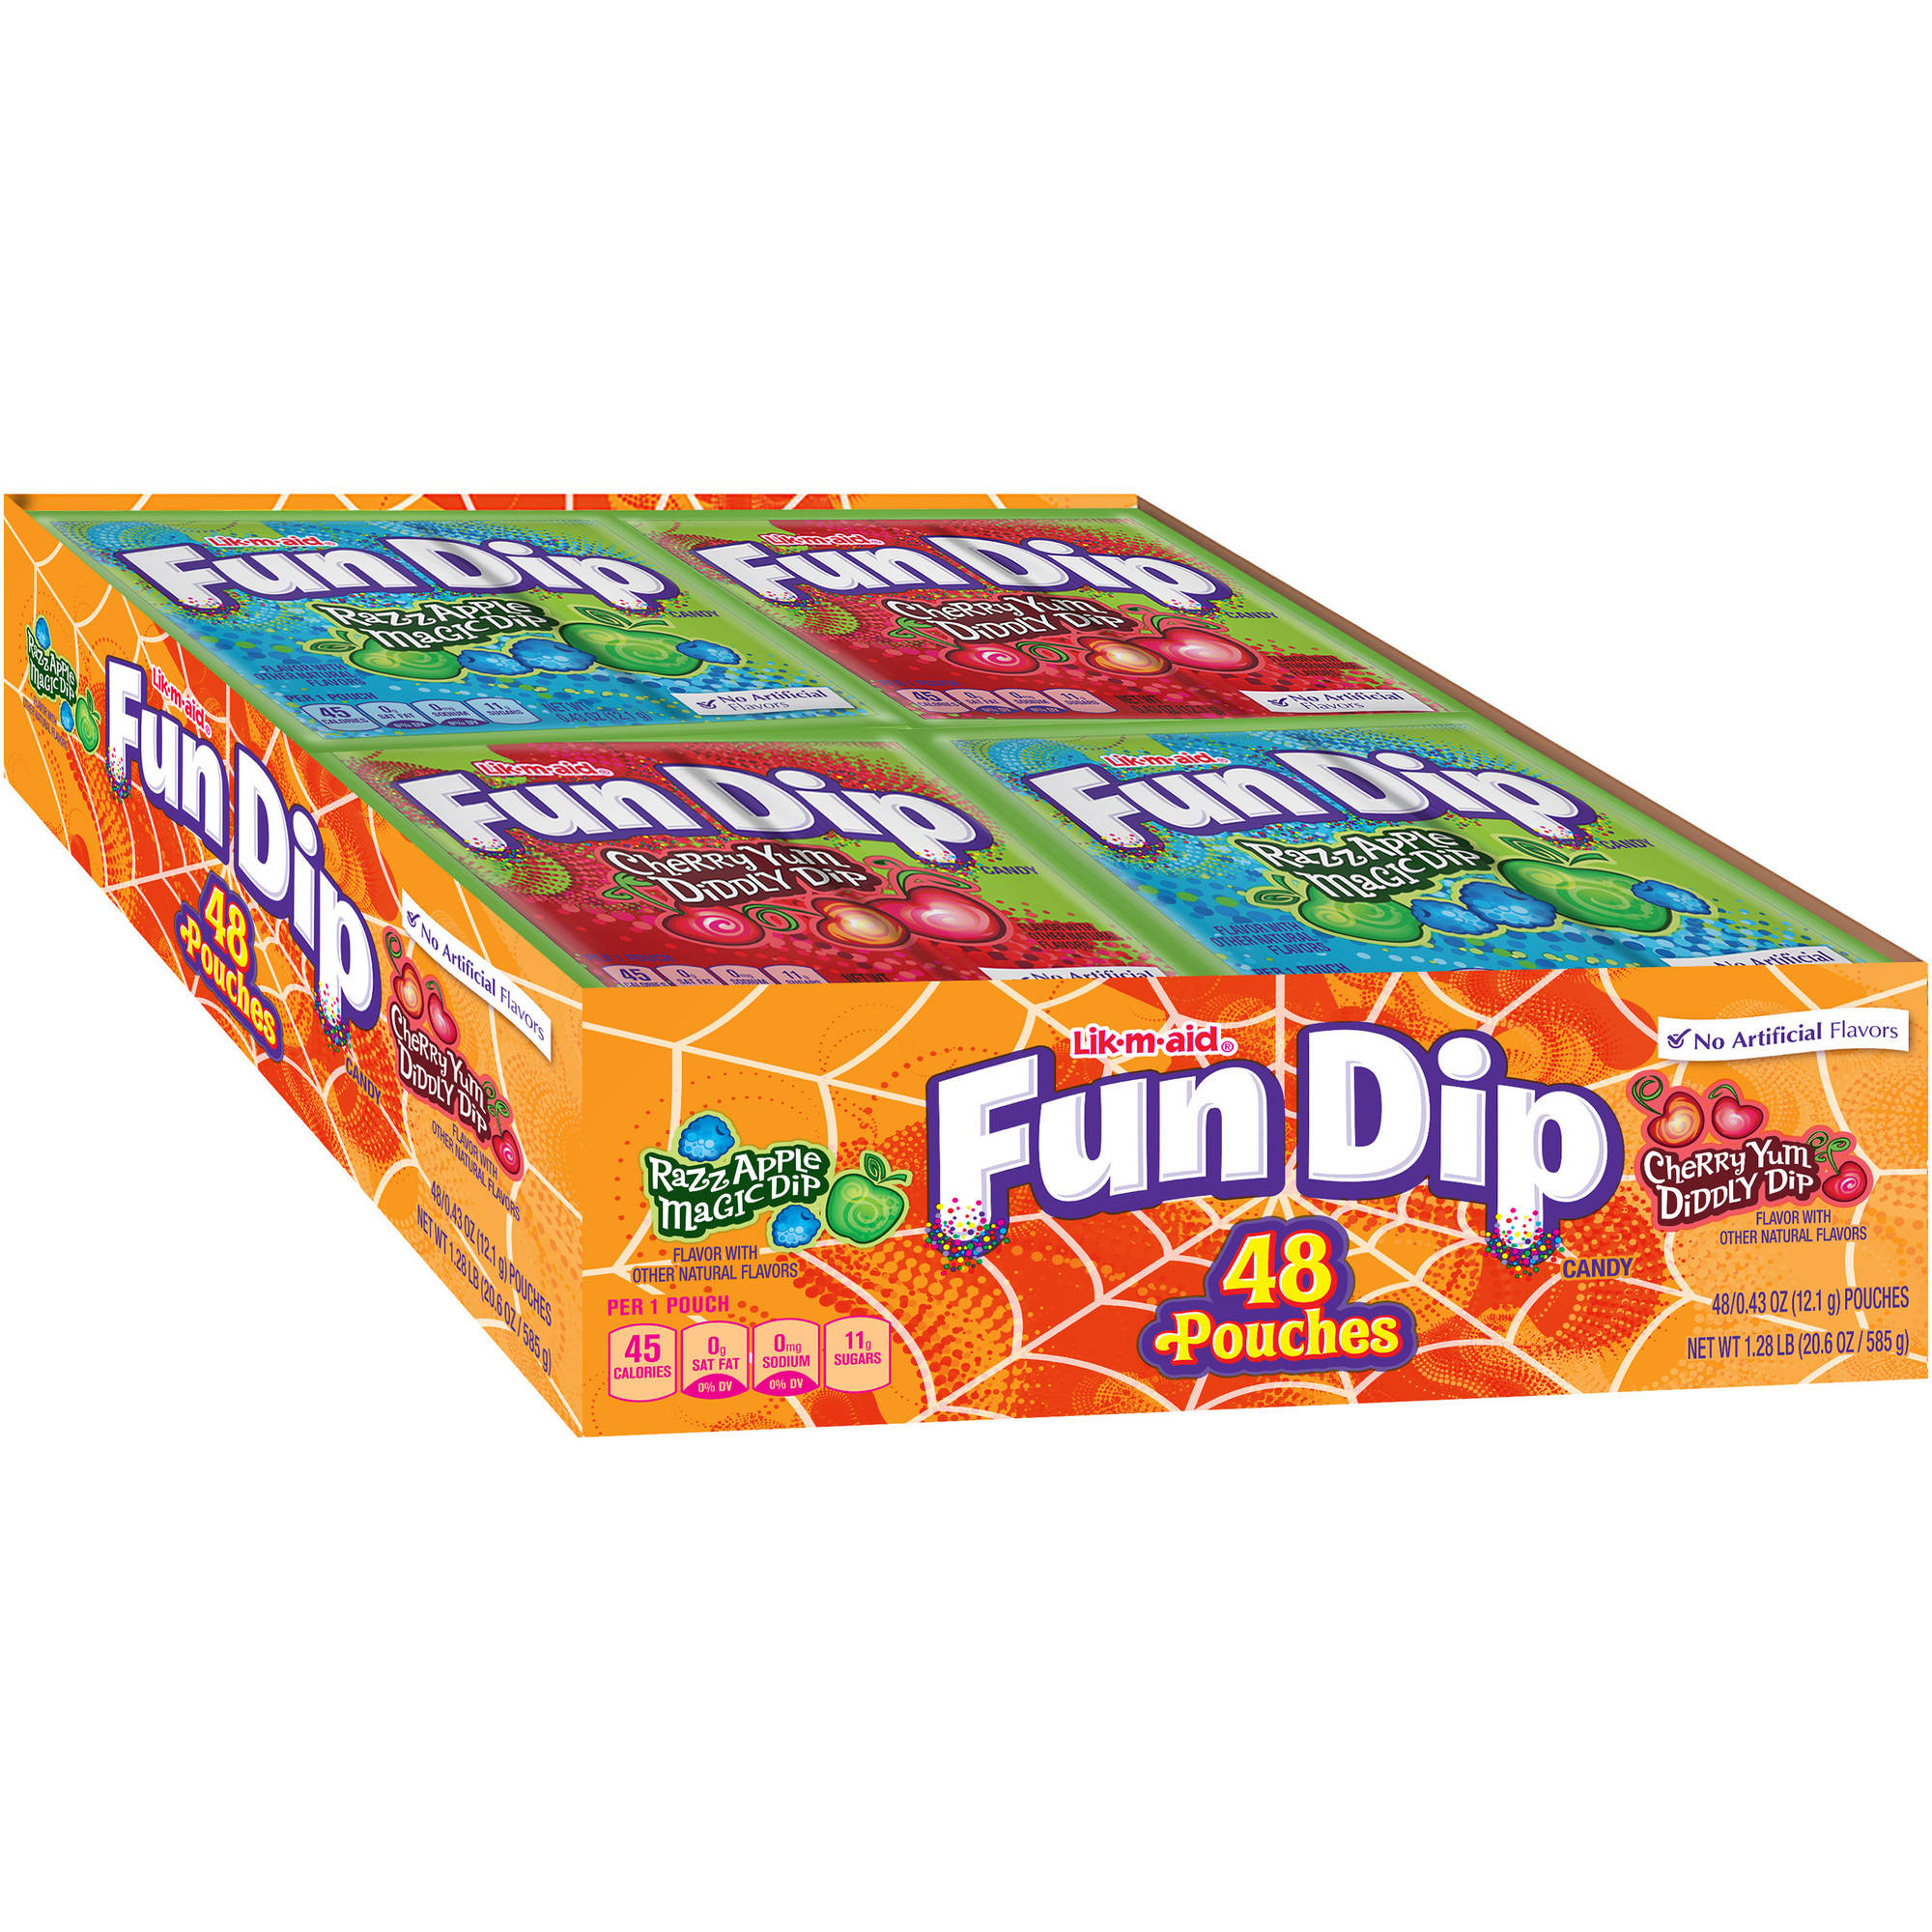 Lik-m-aid Fun Dip Assorted Treat Size Halloween Candy Pouches, 0.42 oz, 48 ct by Nestlé USA, Inc.